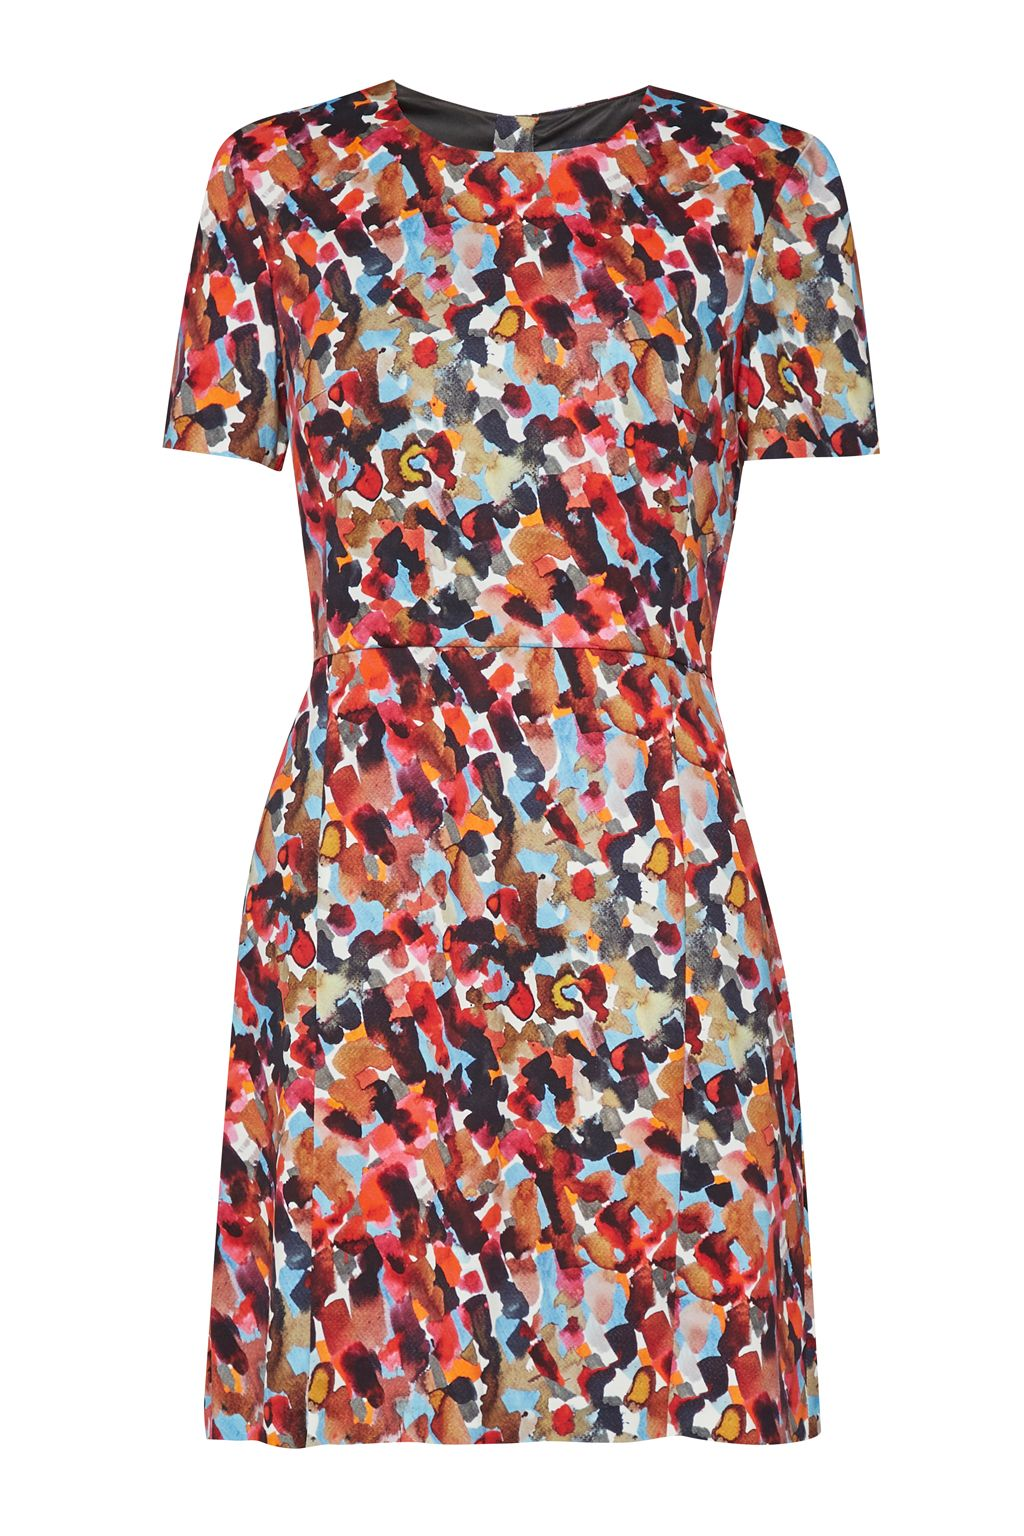 French Connection Eleanor Printed Stretch Dress, Multi-Coloured